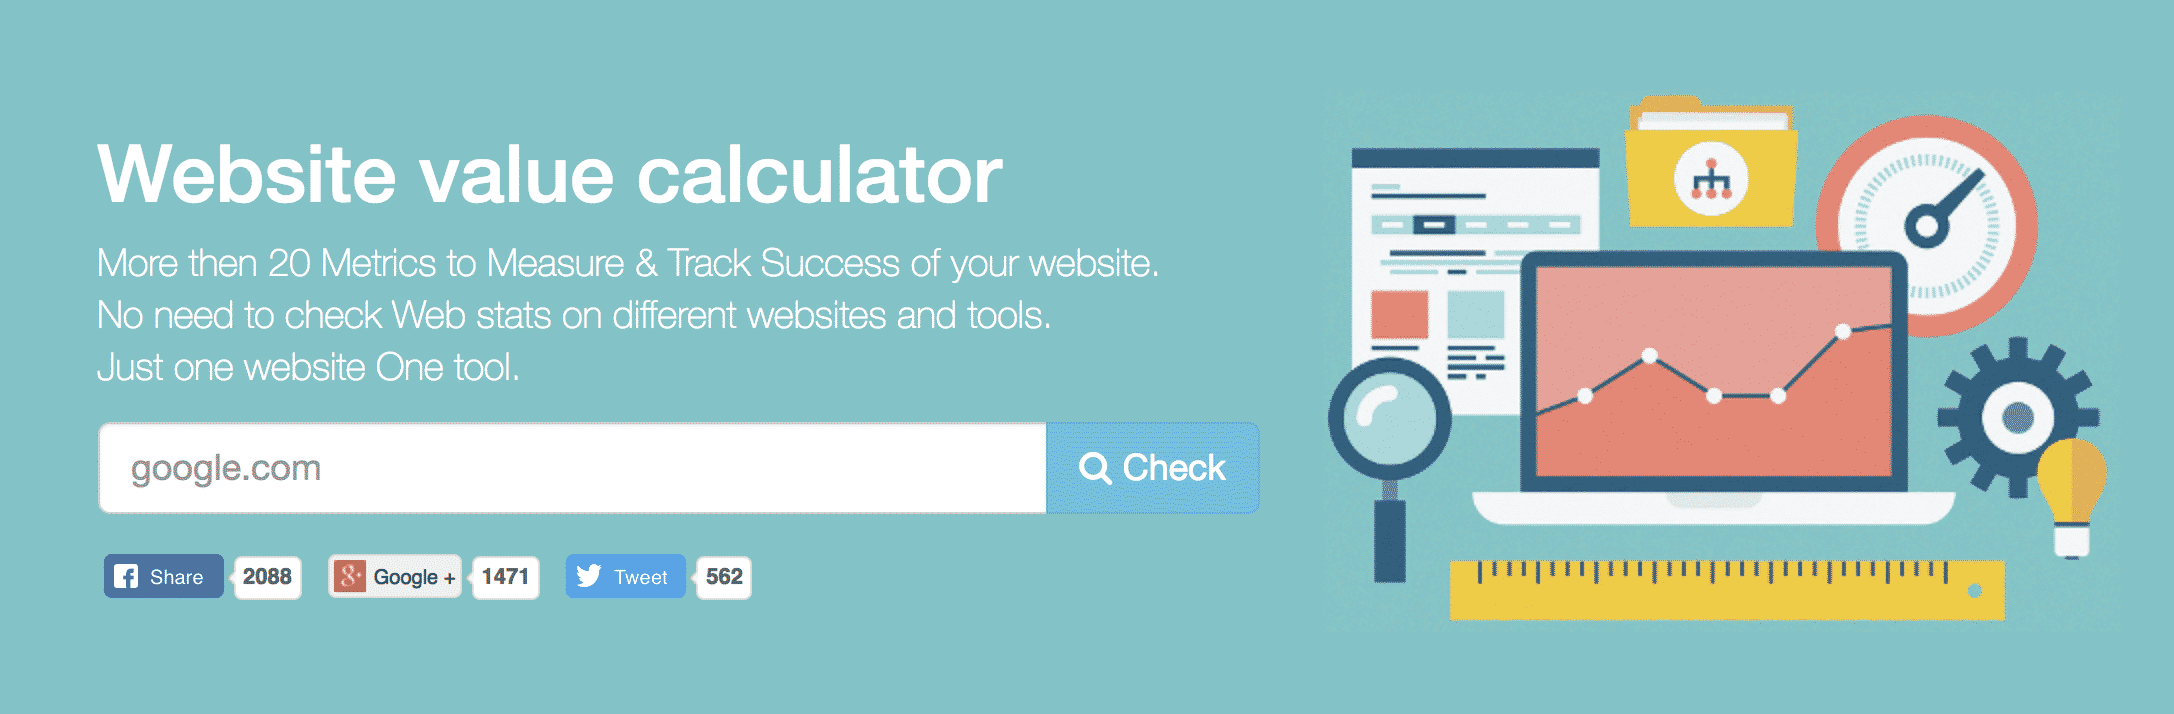 Website Outlook - Domain Valuation Tool